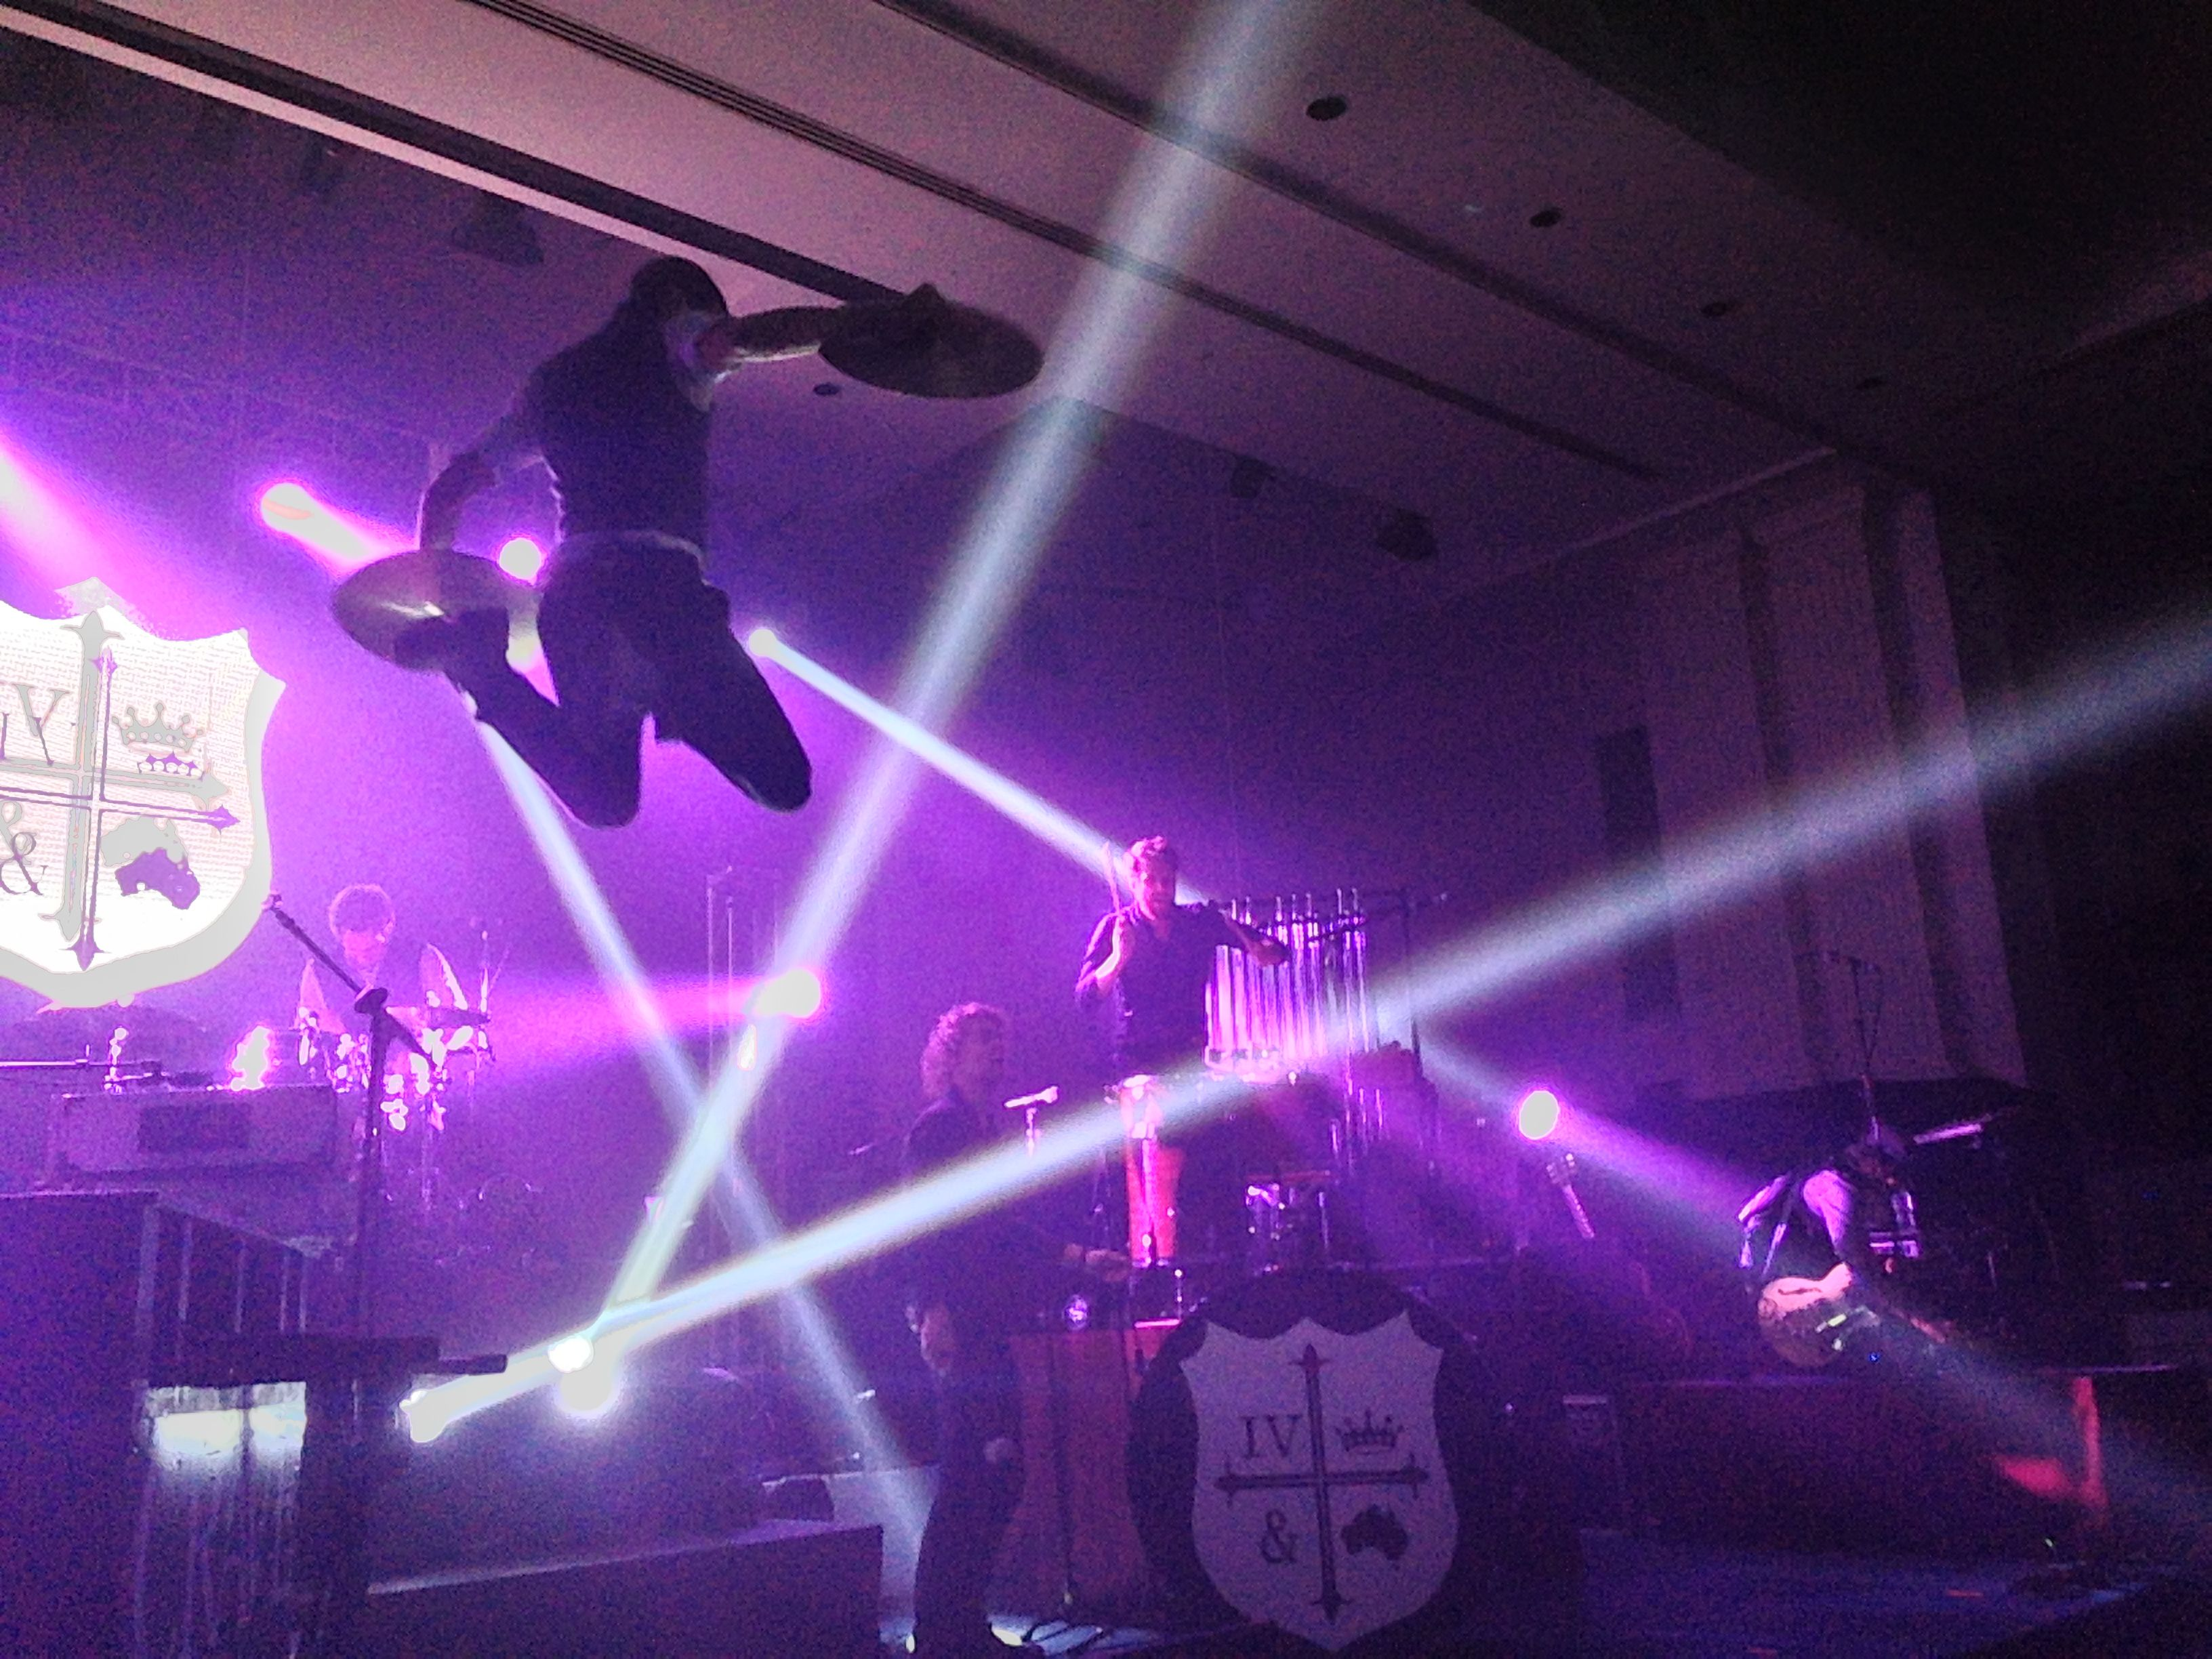 Action shot of for KING & COUNTRY on the K-LOVE Christmas Tour ...